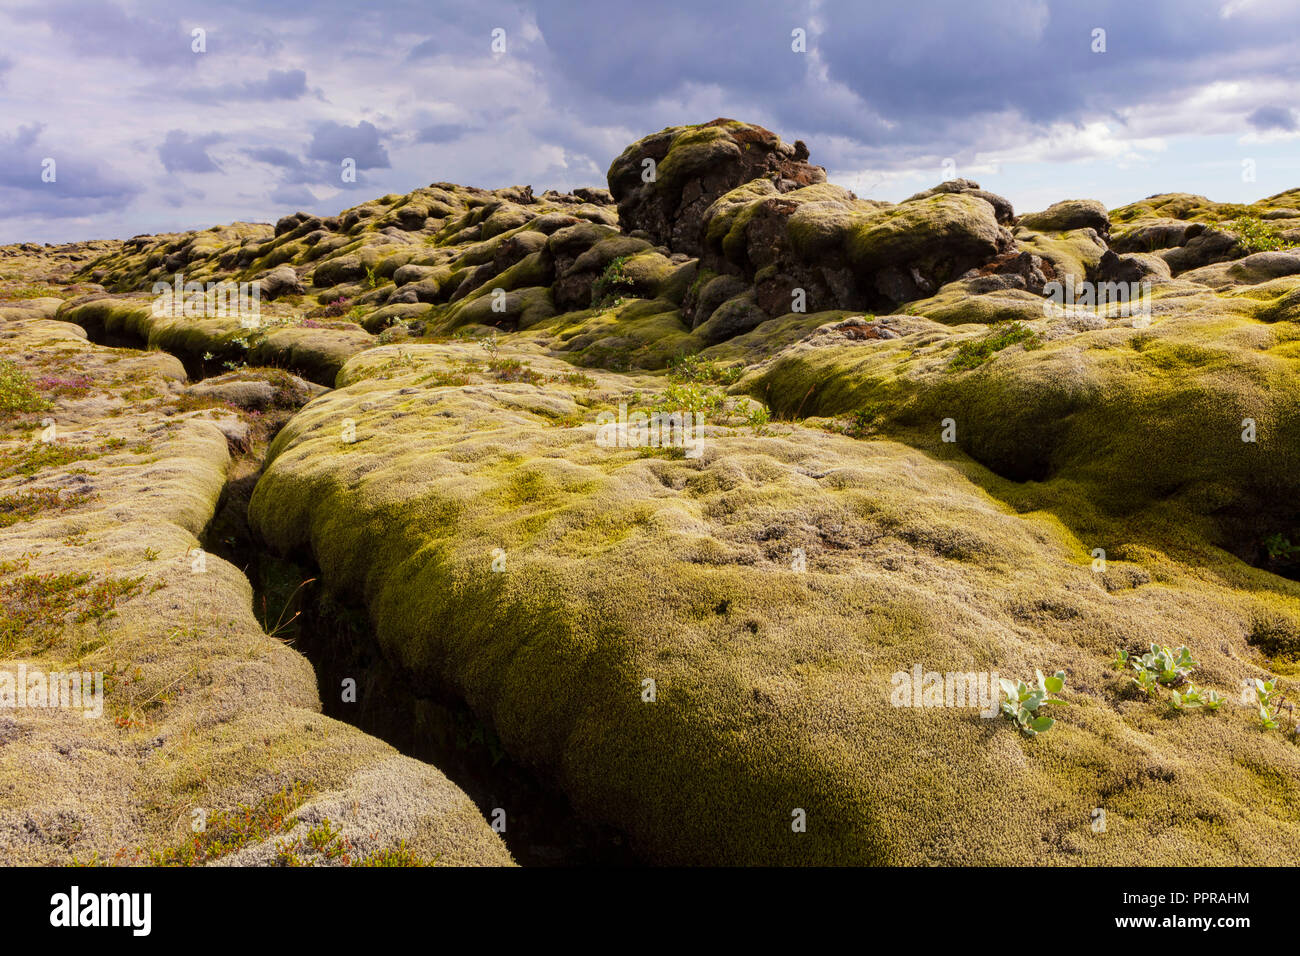 Ancient lava field near Vik, Iceland off of Ring Road. - Stock Image